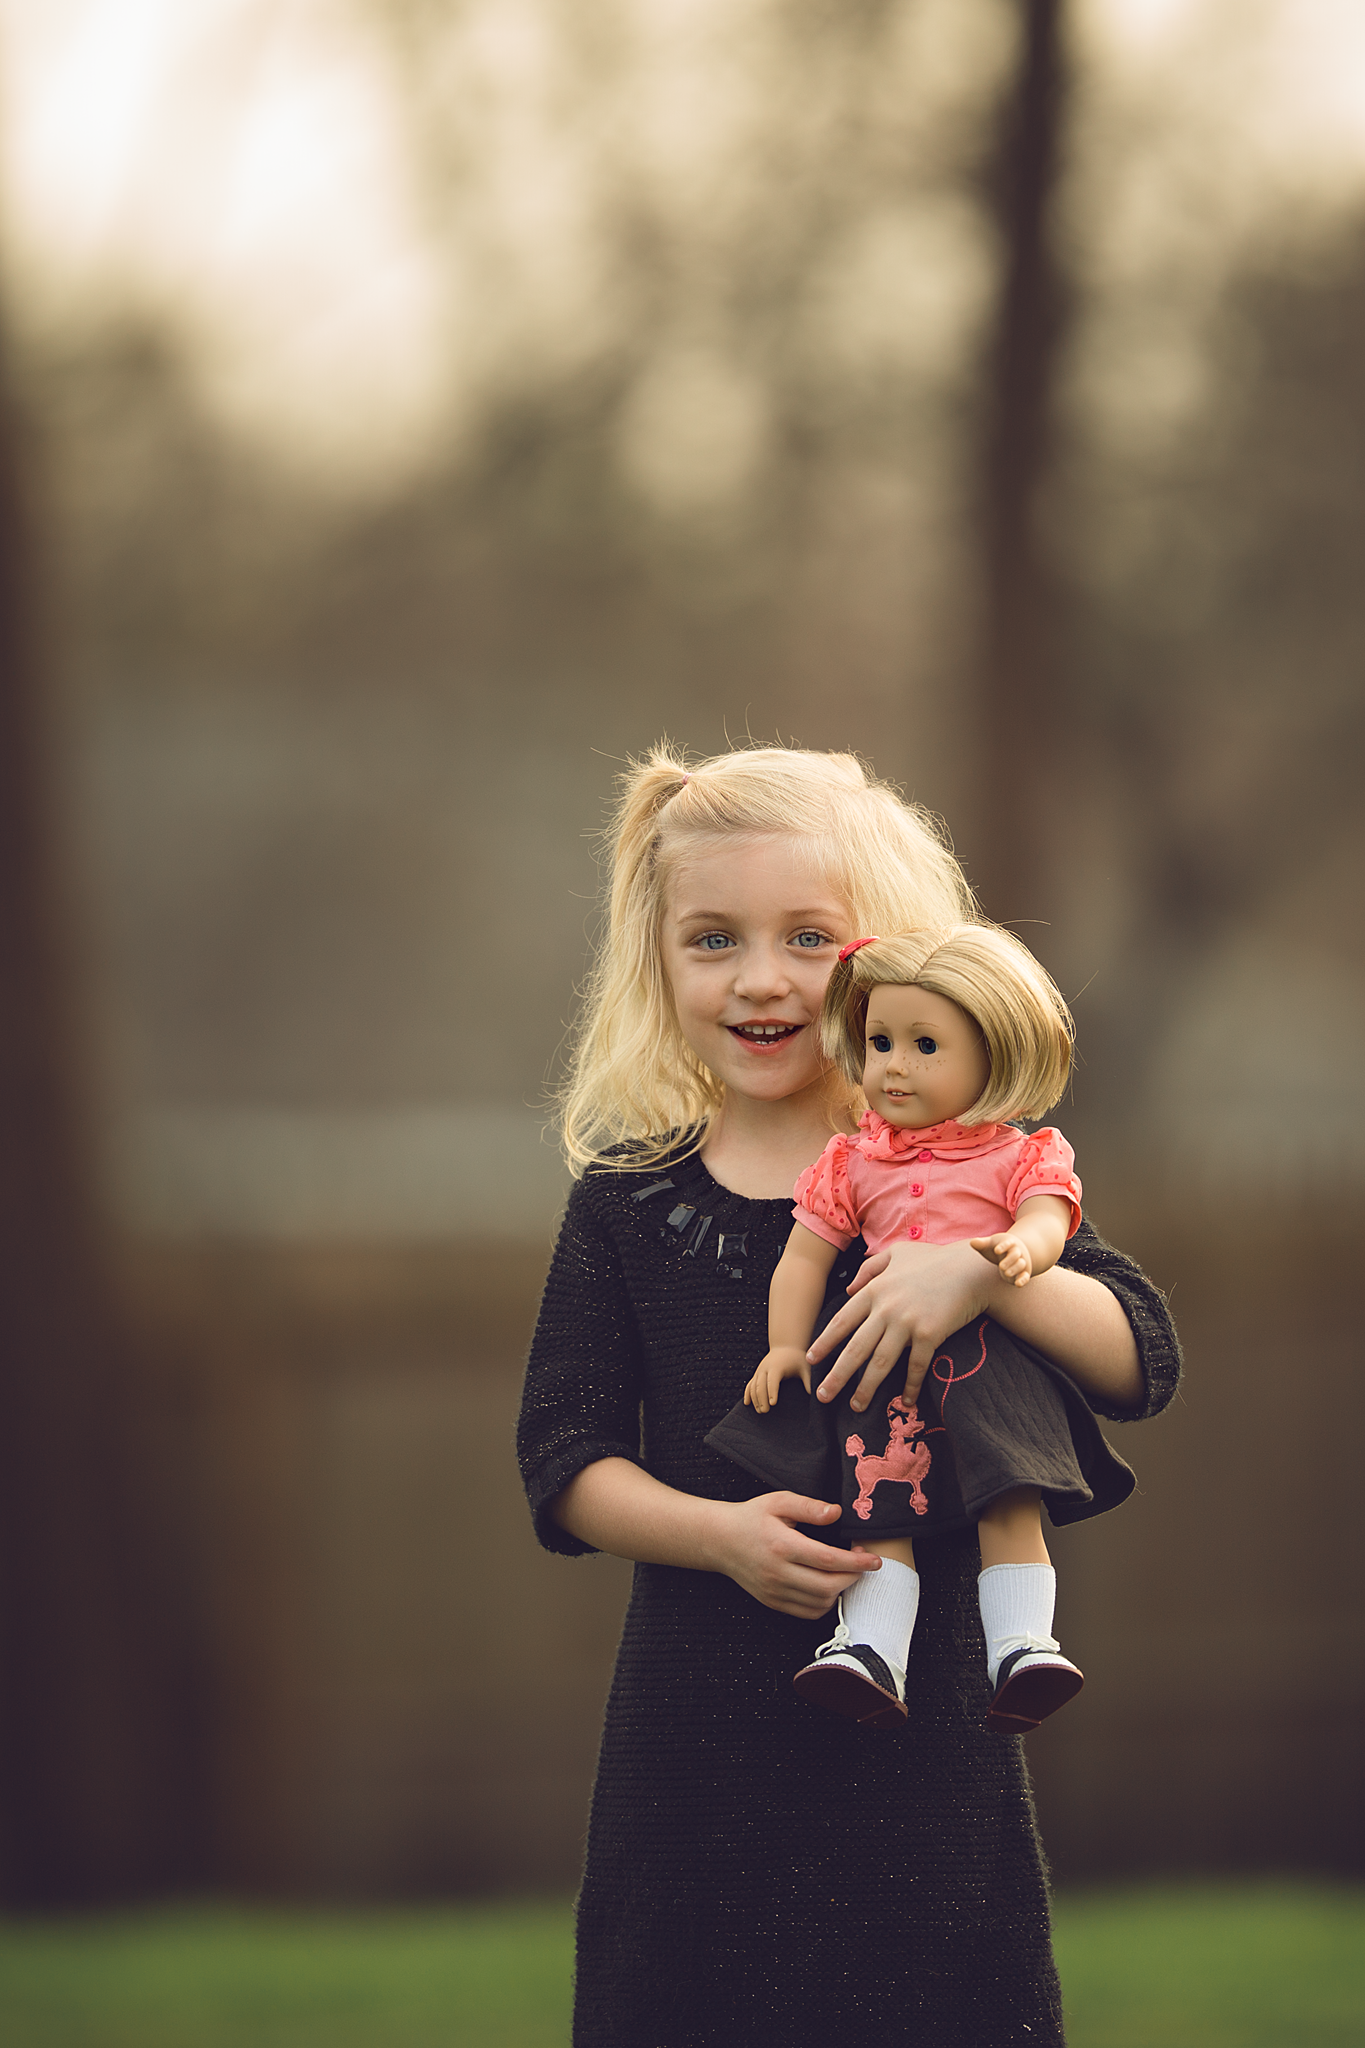 Hello-Olivia-photography-Long-Island-Photographer-American-Doll-kit-Christmas